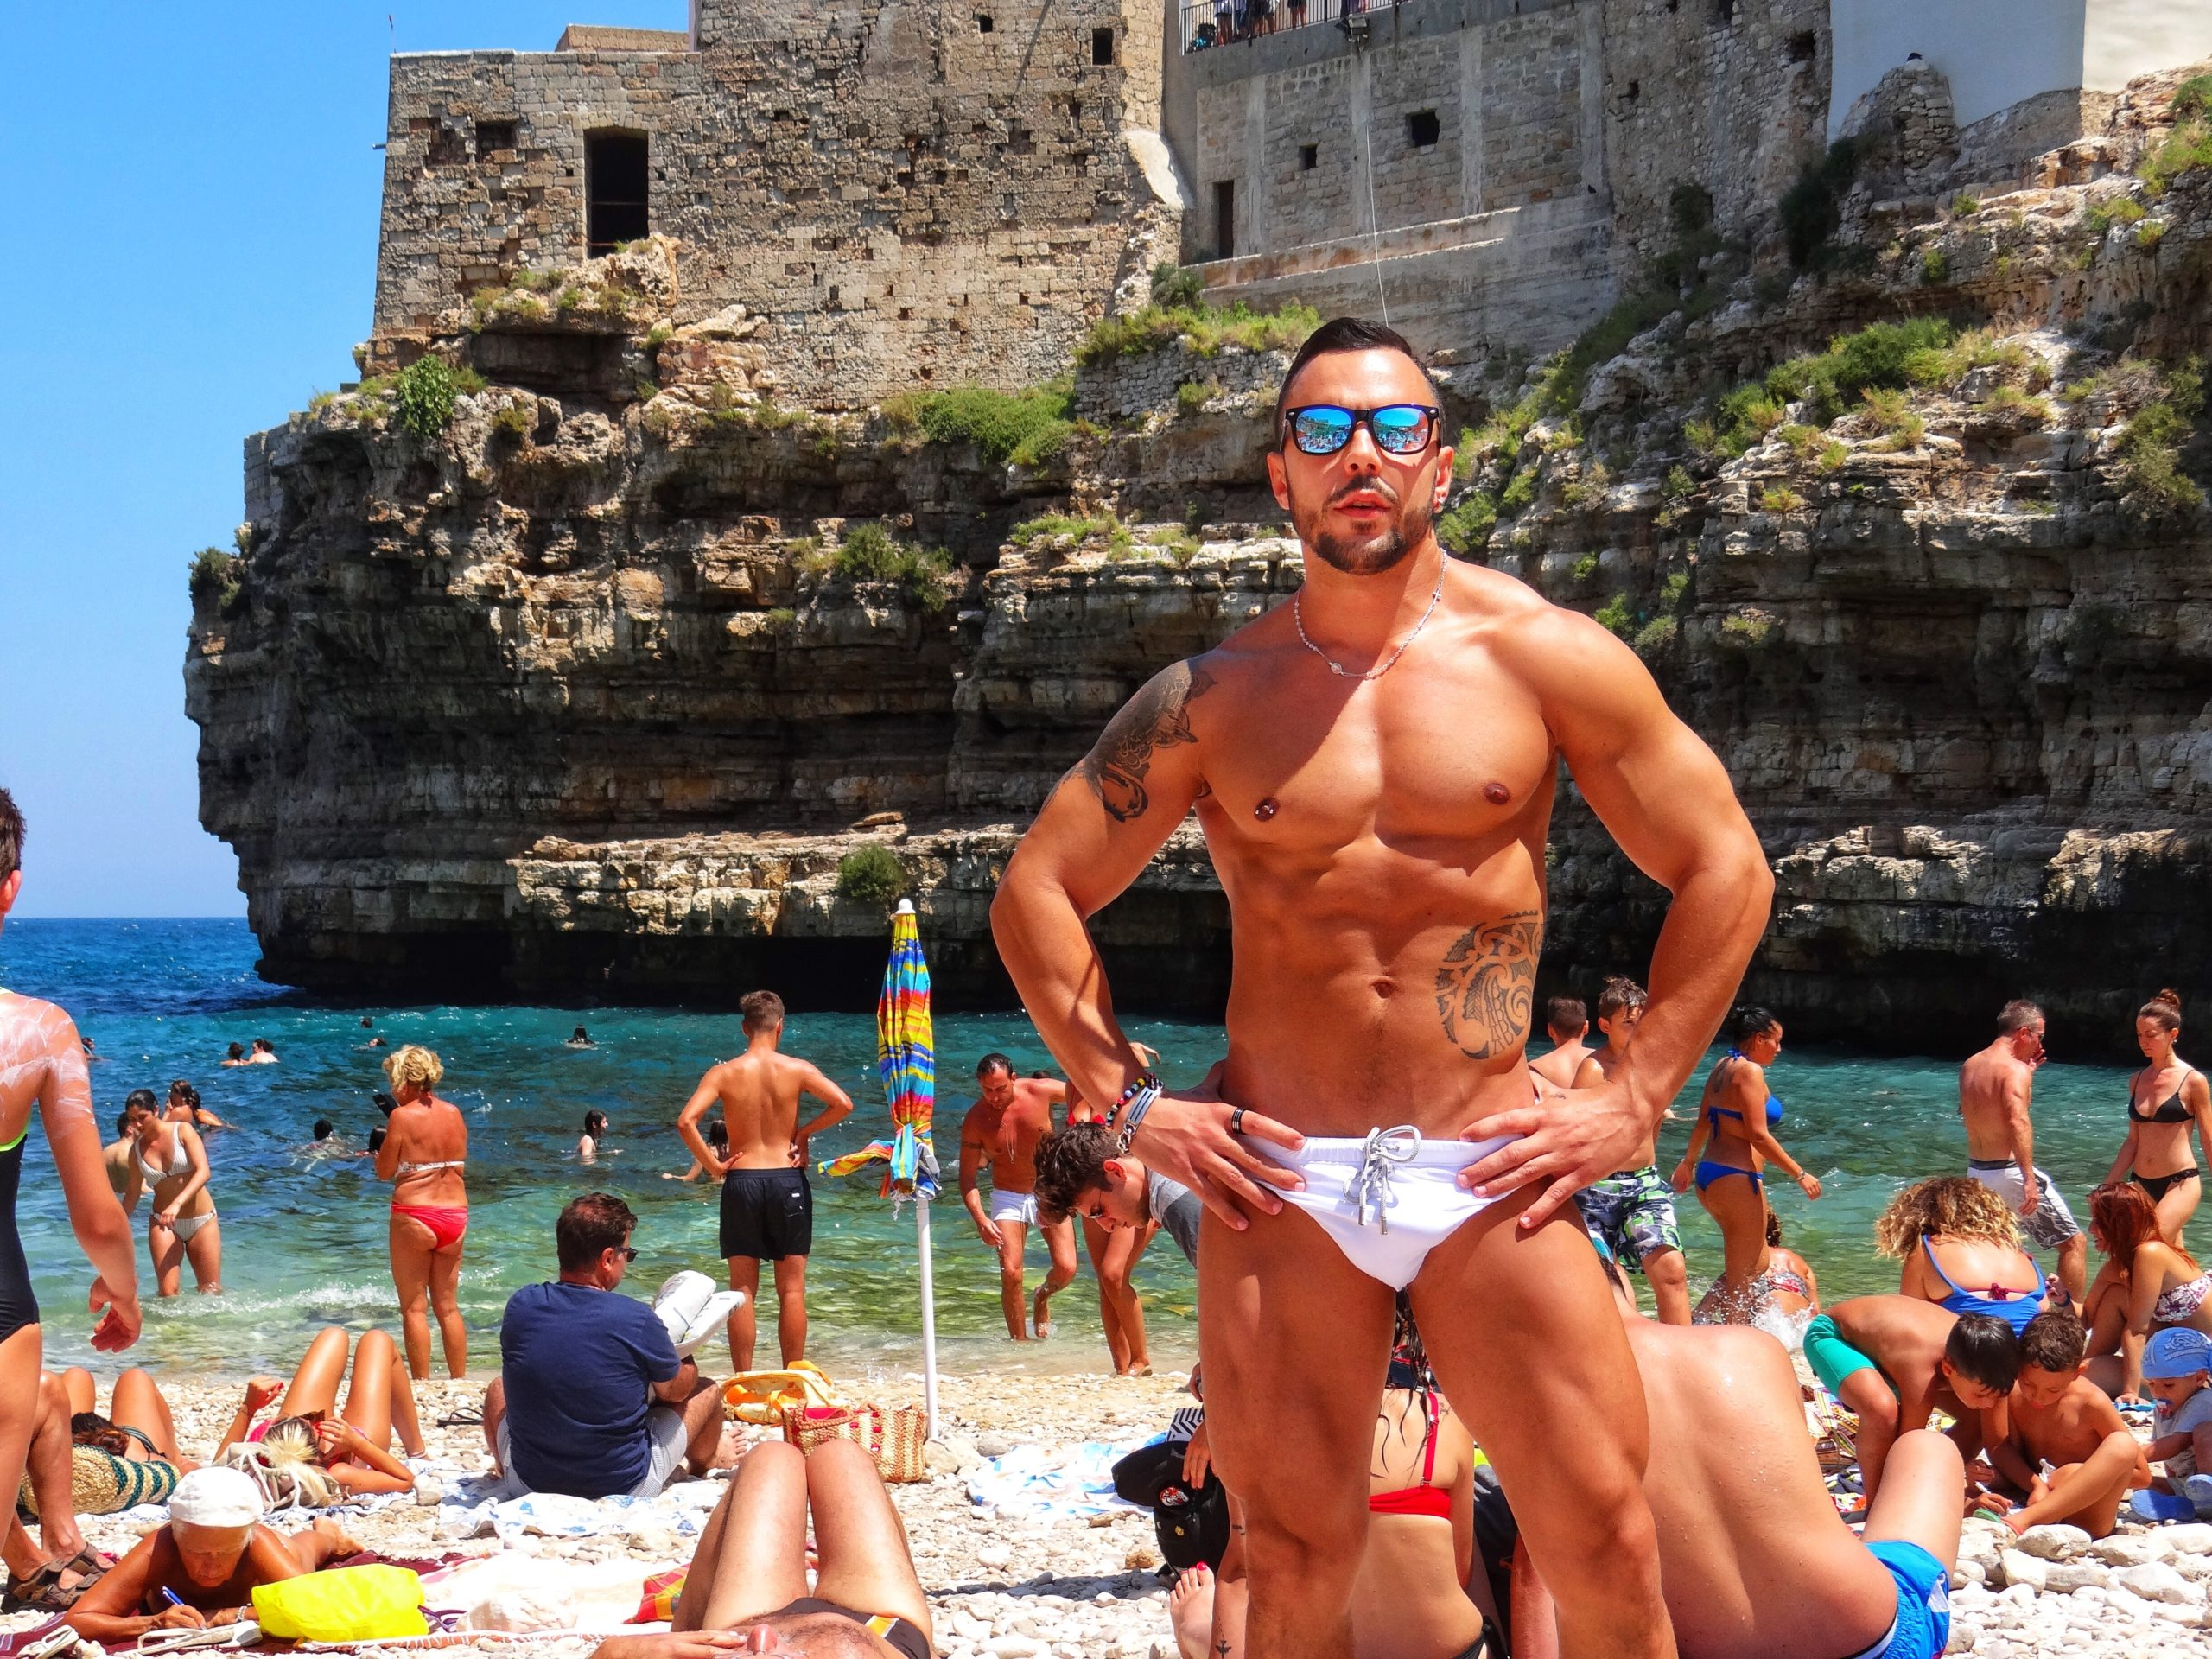 Gay Puglia - the Big Gay Podcast from Puglia. Serving up Puglia's finest food and destination recommendations. Italy's best naturist and gay beaches are in Puglia.